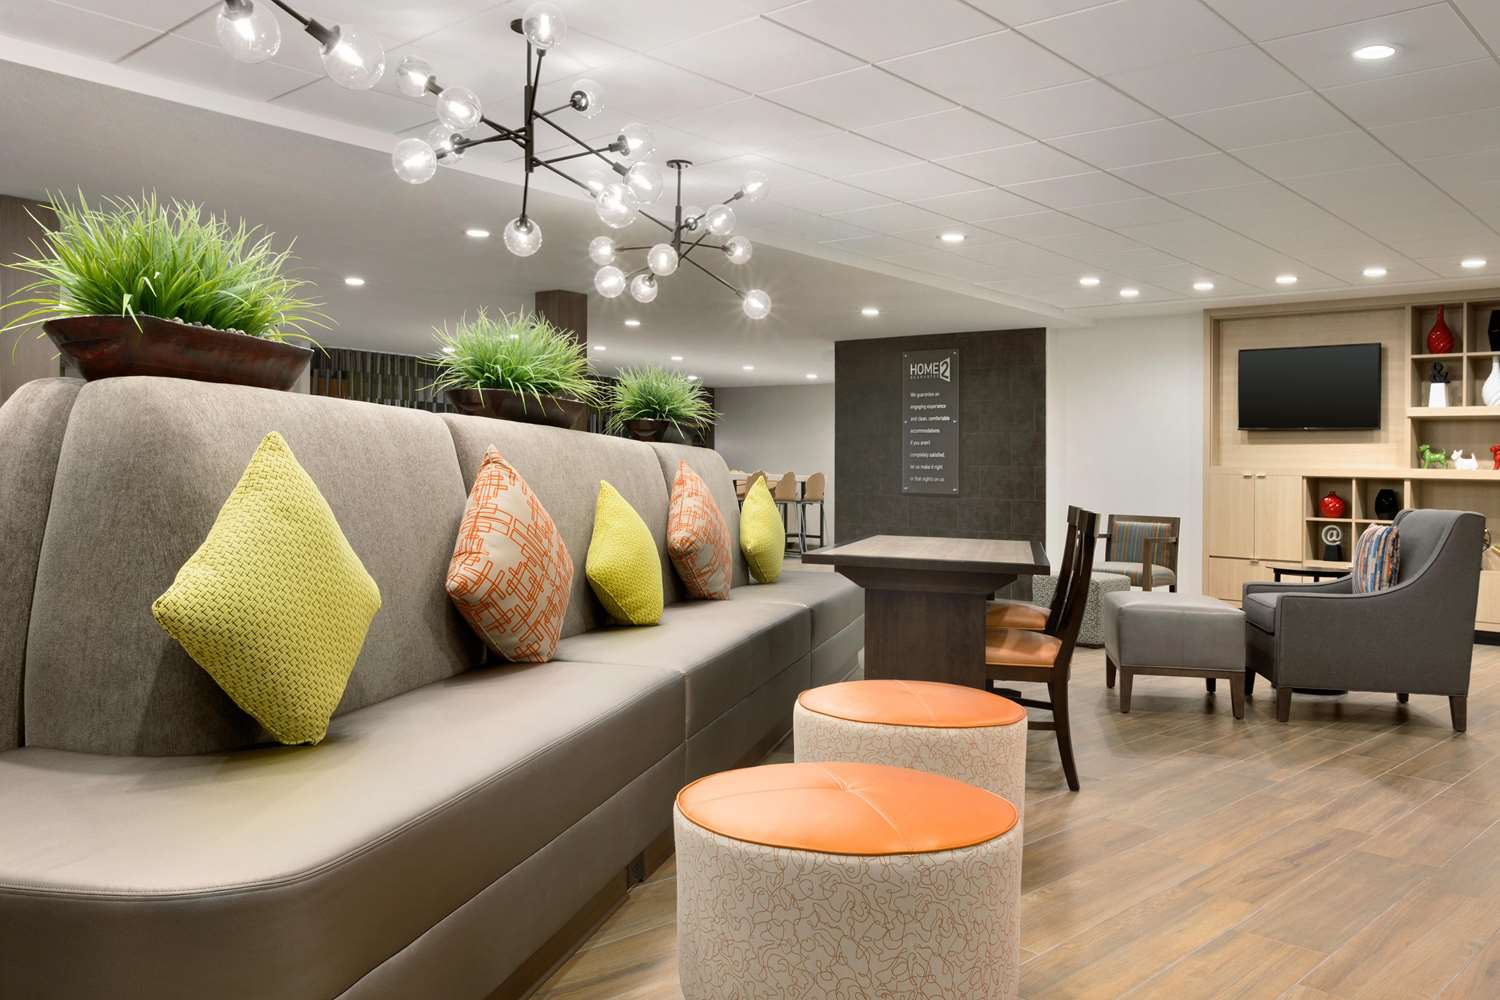 Lobby - Home2 Suites by Hilton Woodlands Shenandoah